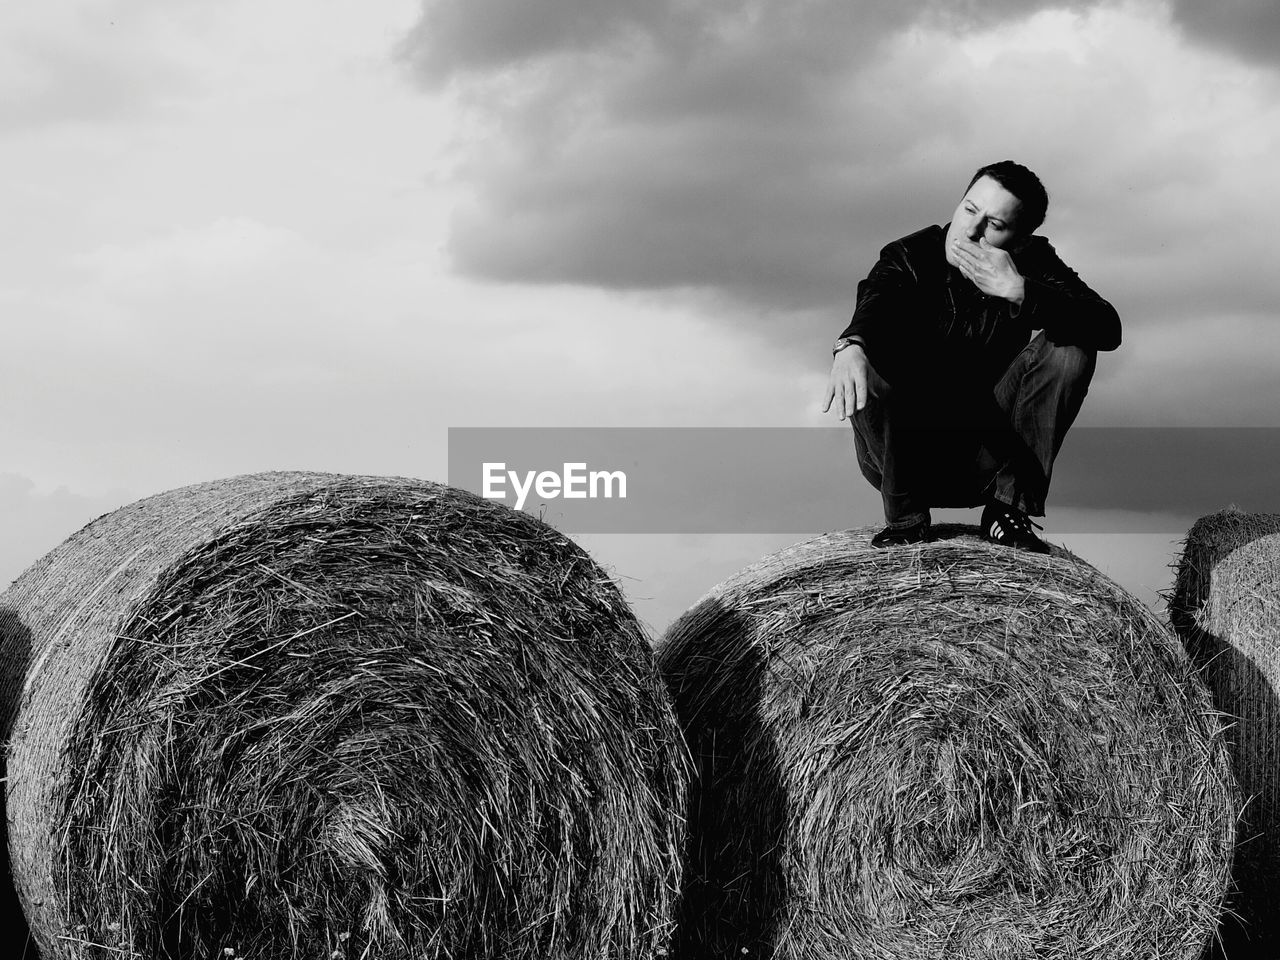 Full Length Of Man Crouching On Hay Bale Against Cloudy Sky